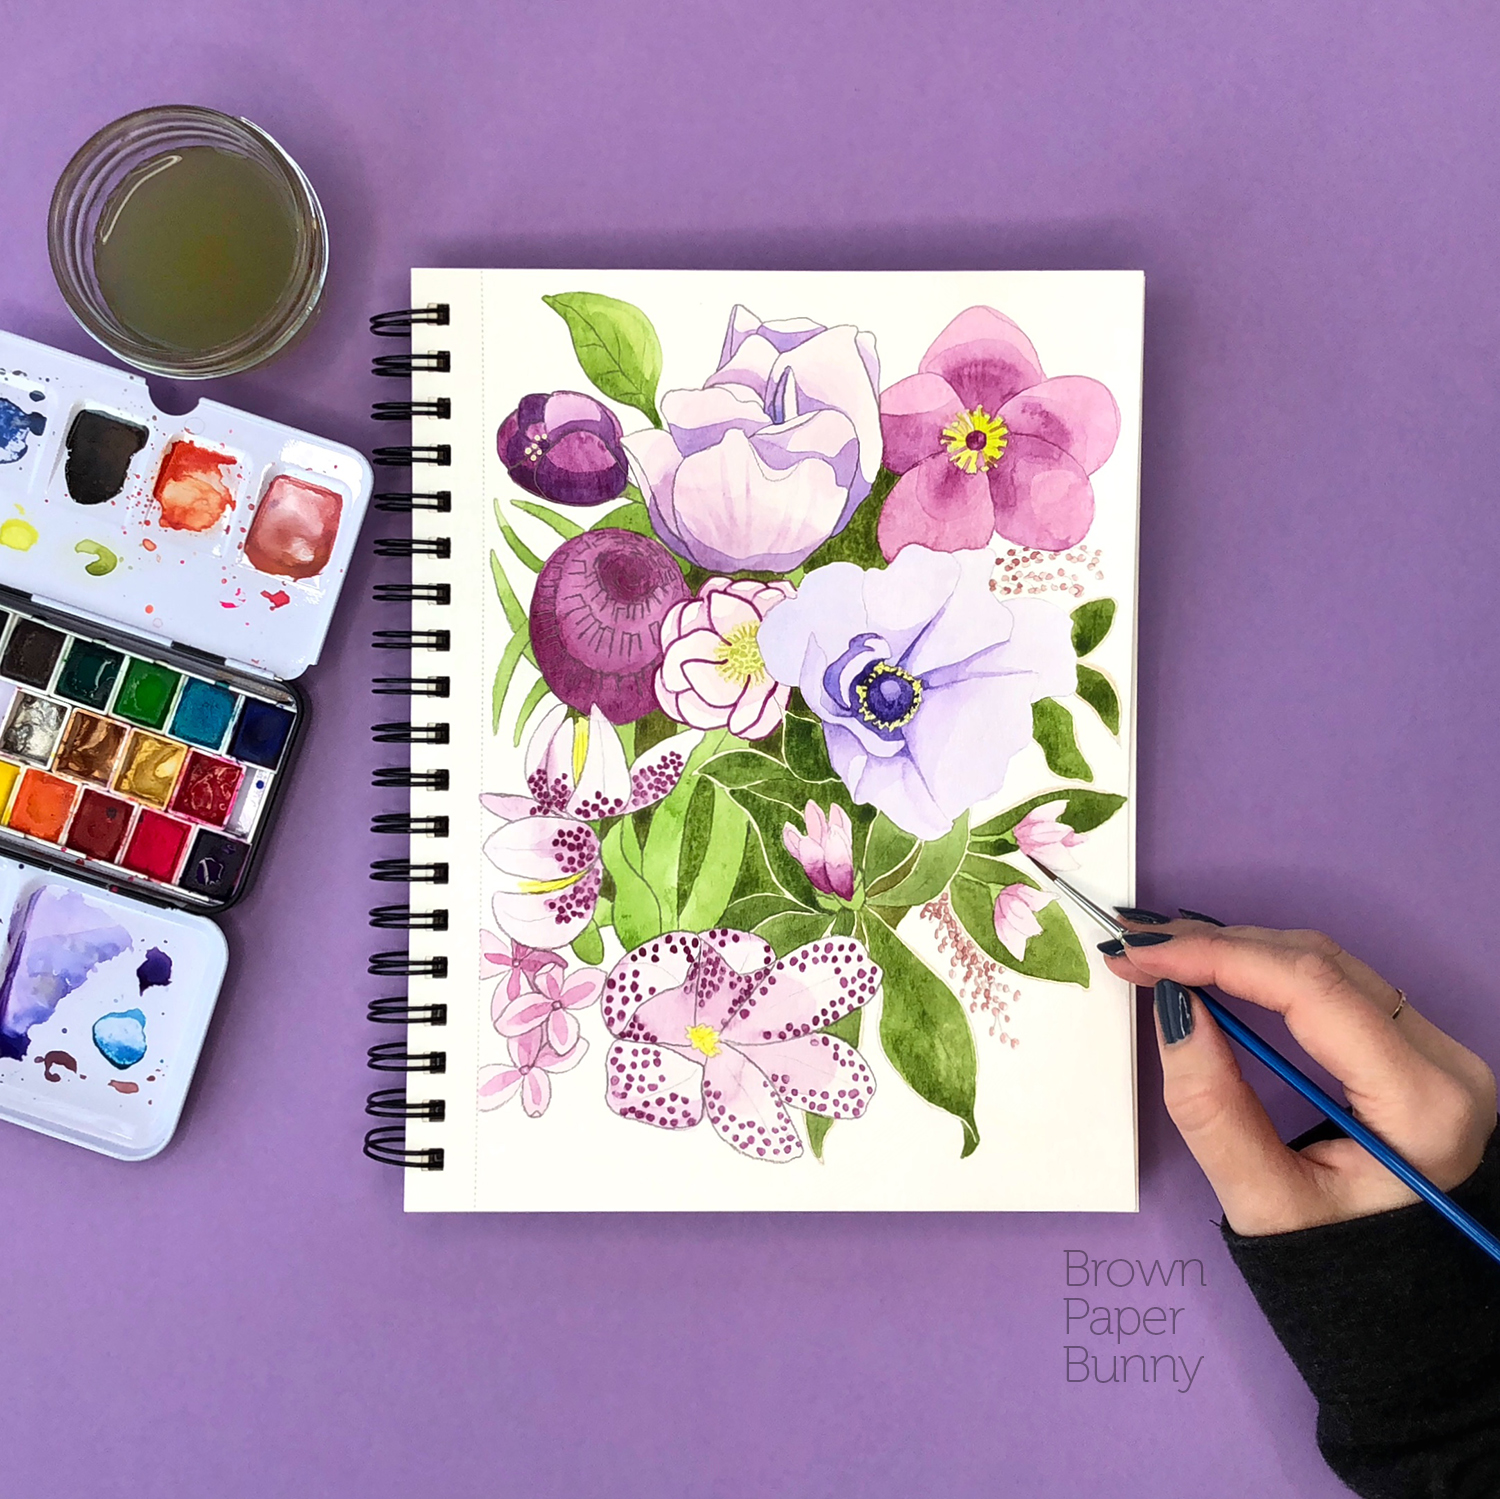 Watercolor floral illustration created for Prima Watercolors.